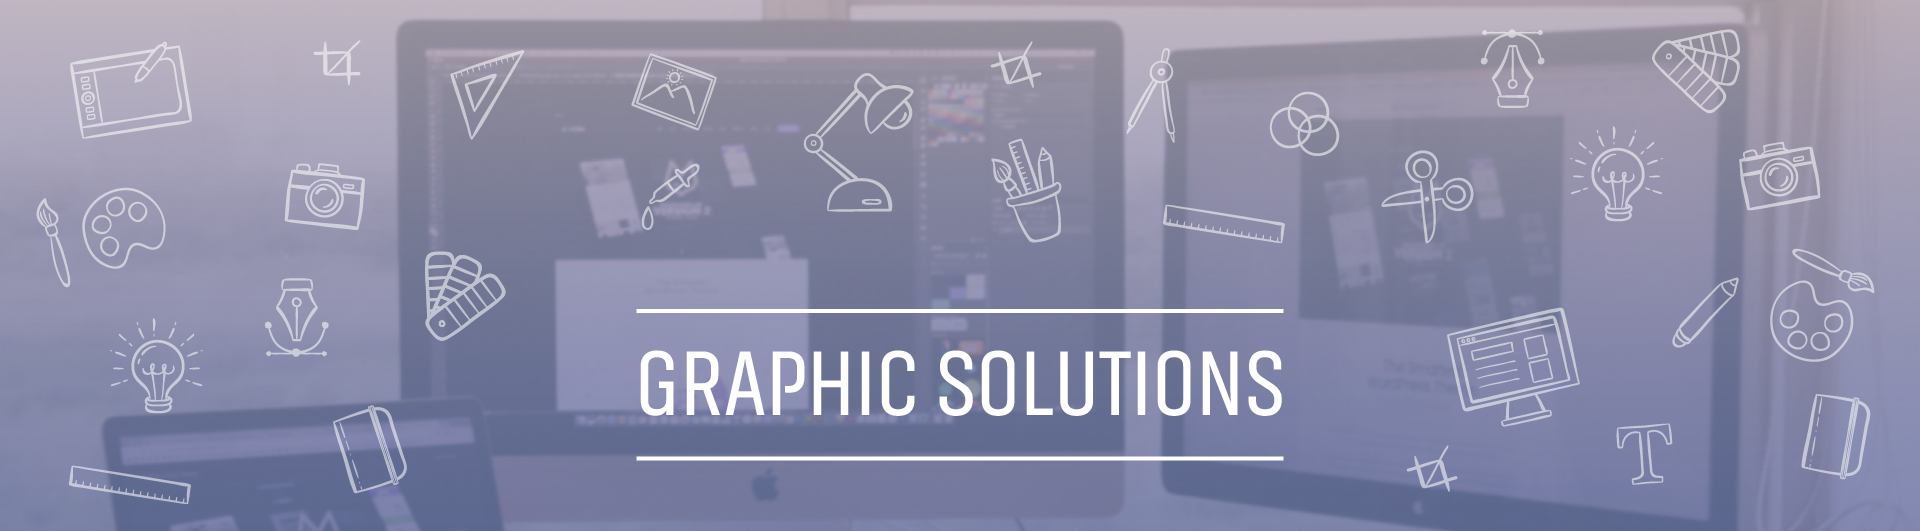 Graphic Solutions